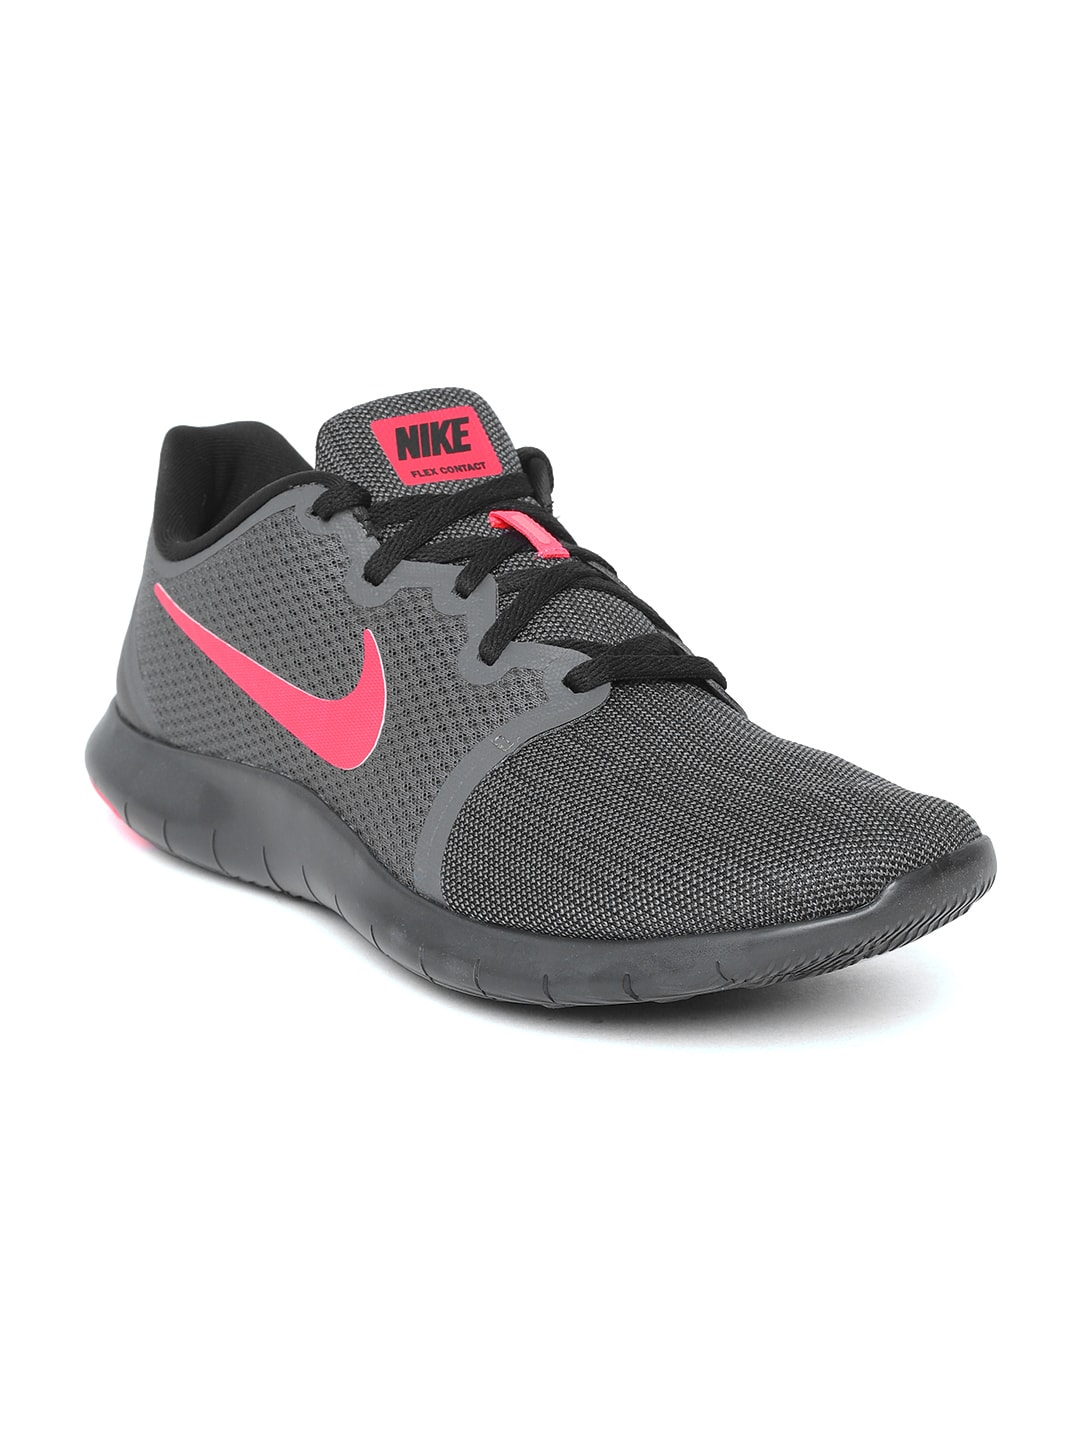 08add47d3e30 Nike Running Shoes - Buy Nike Running Shoes Online